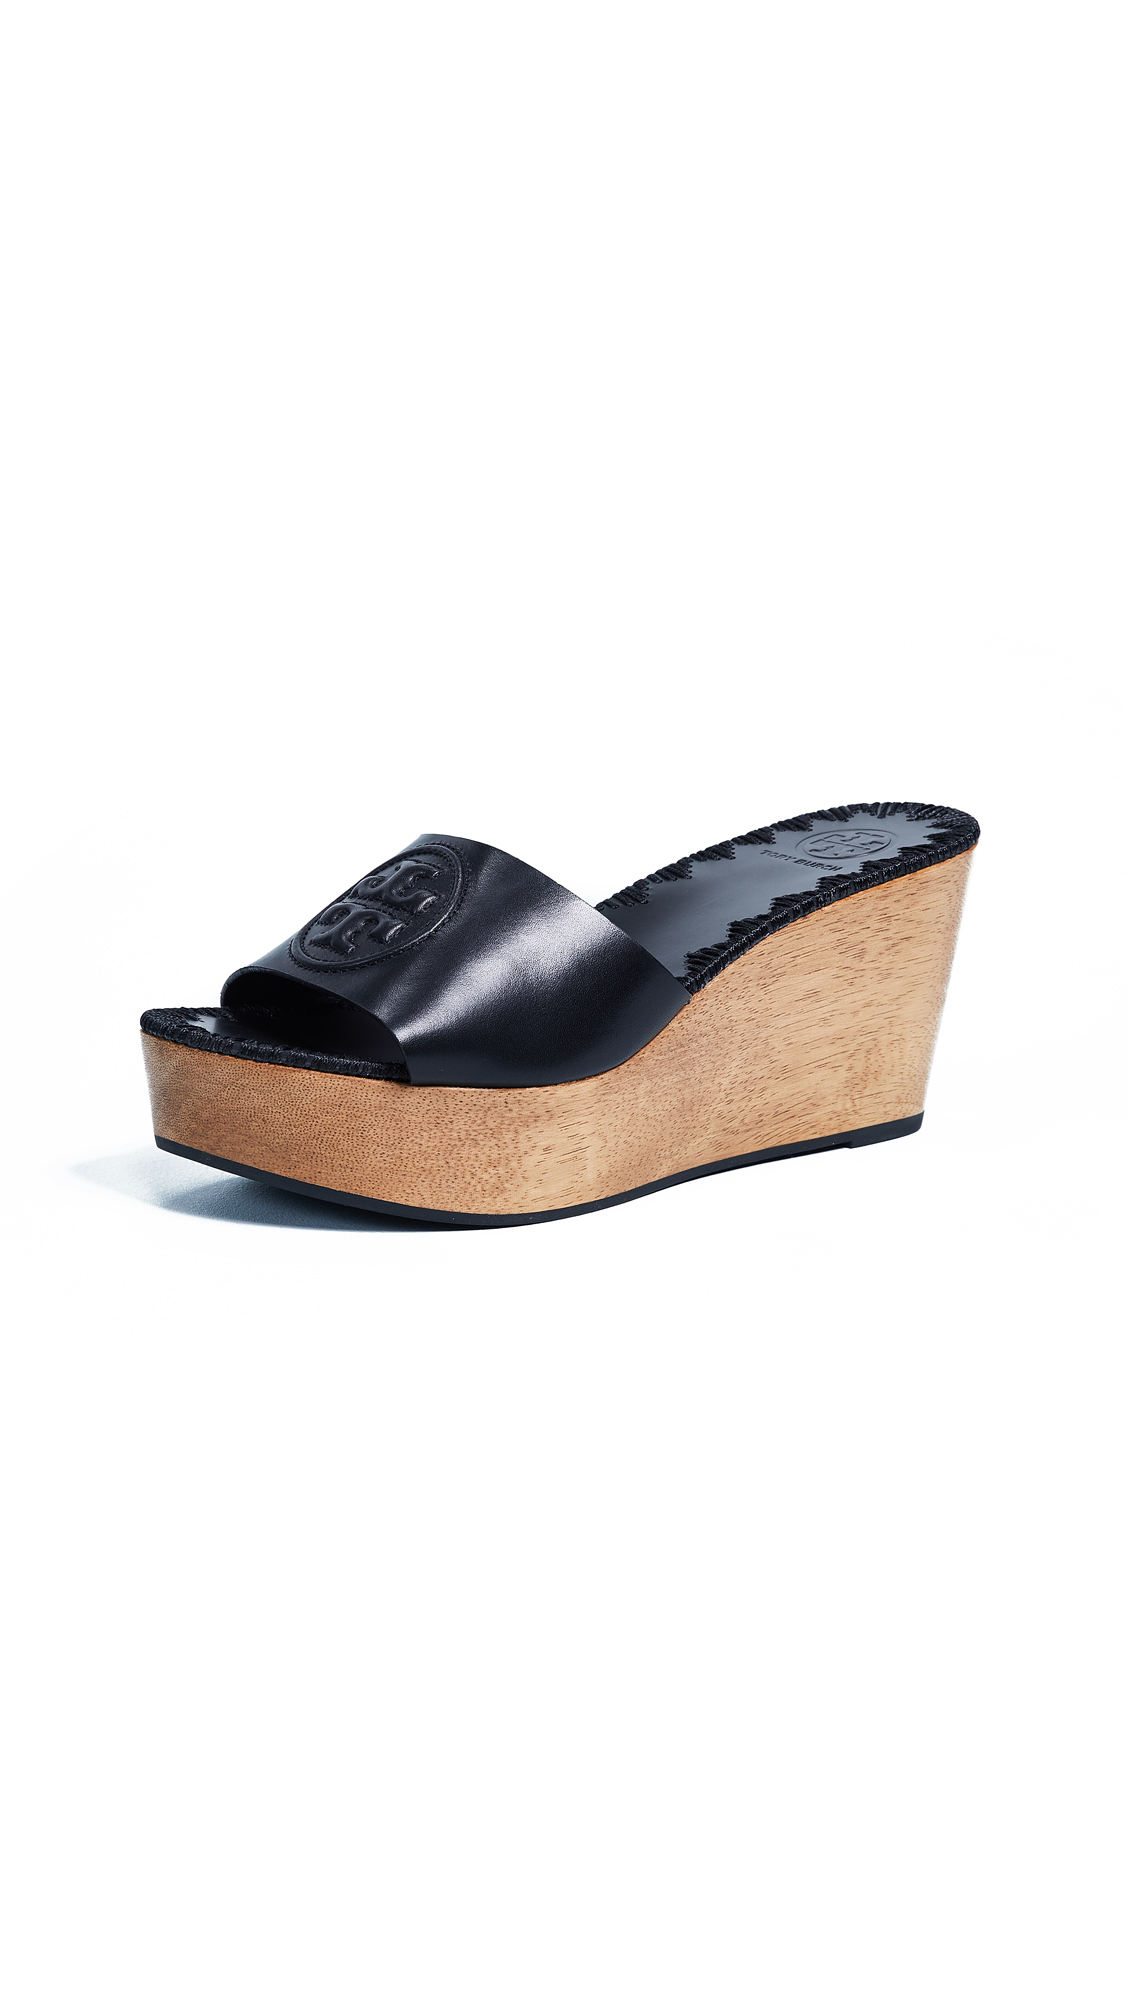 Tory Burch Patty 80mm Wedge Slide - Perfect Black